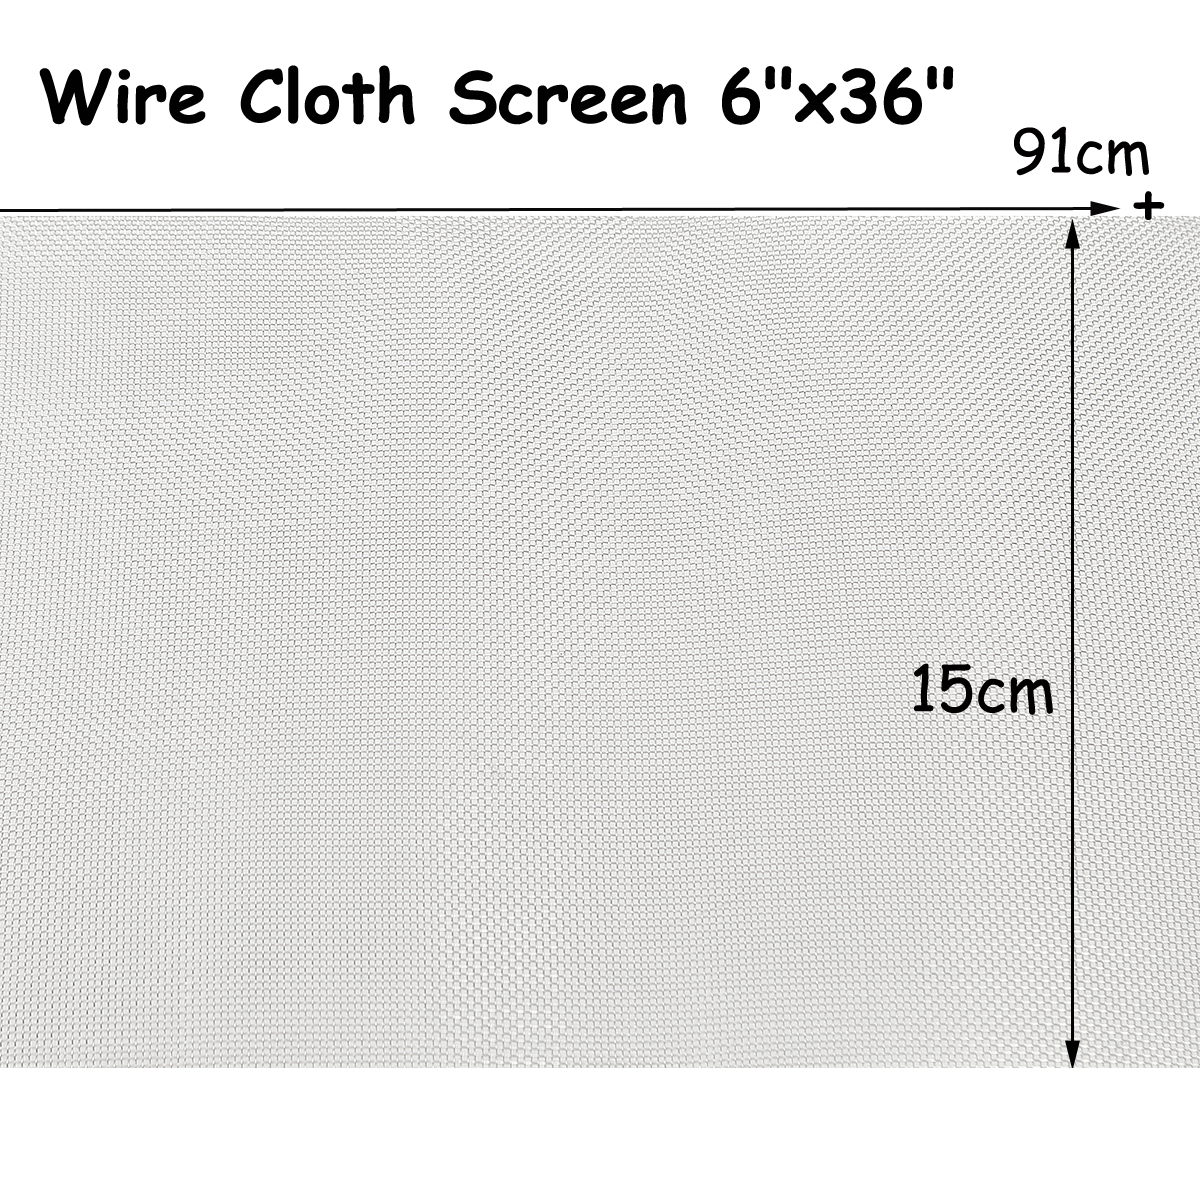 NEW 15x91cm Woven Wire Cloth Screen Stainless Steel 304 30 Mesh Filter 6x36 new stainless steel 304 mesh 4 047 wire cloth screen filter 16 x16 40cm x 40cm